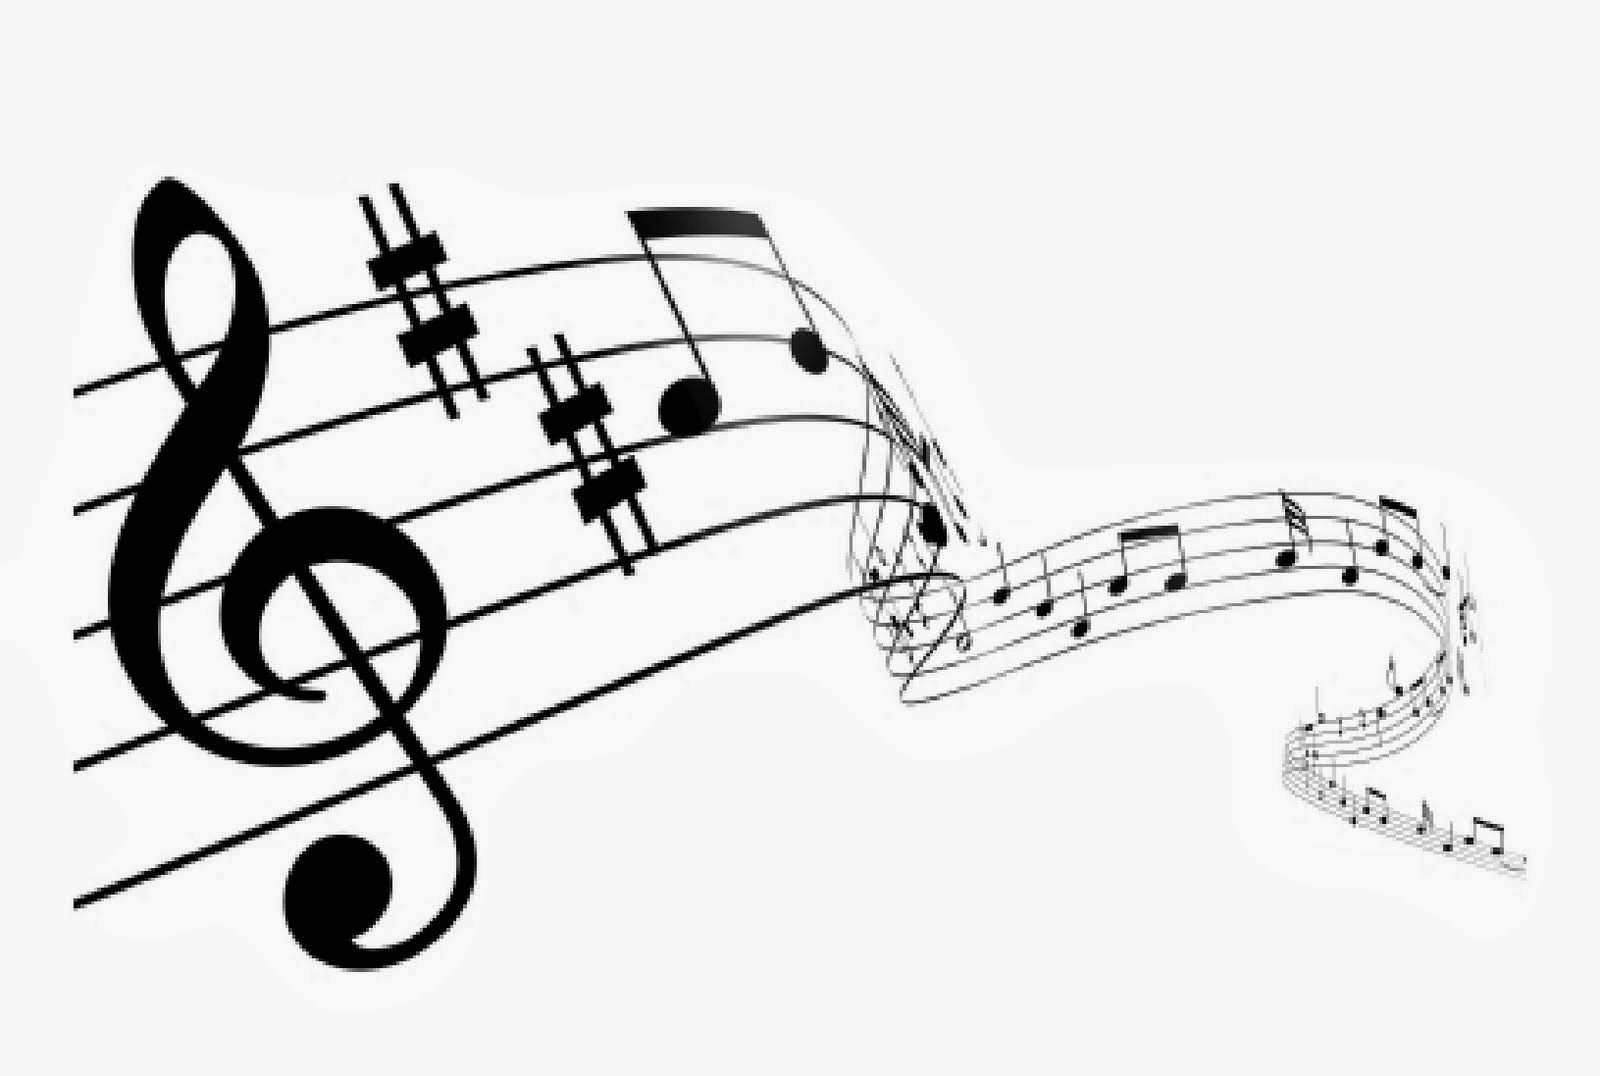 Drawings in pencil of music notes musical developments pencil drawings of music notes